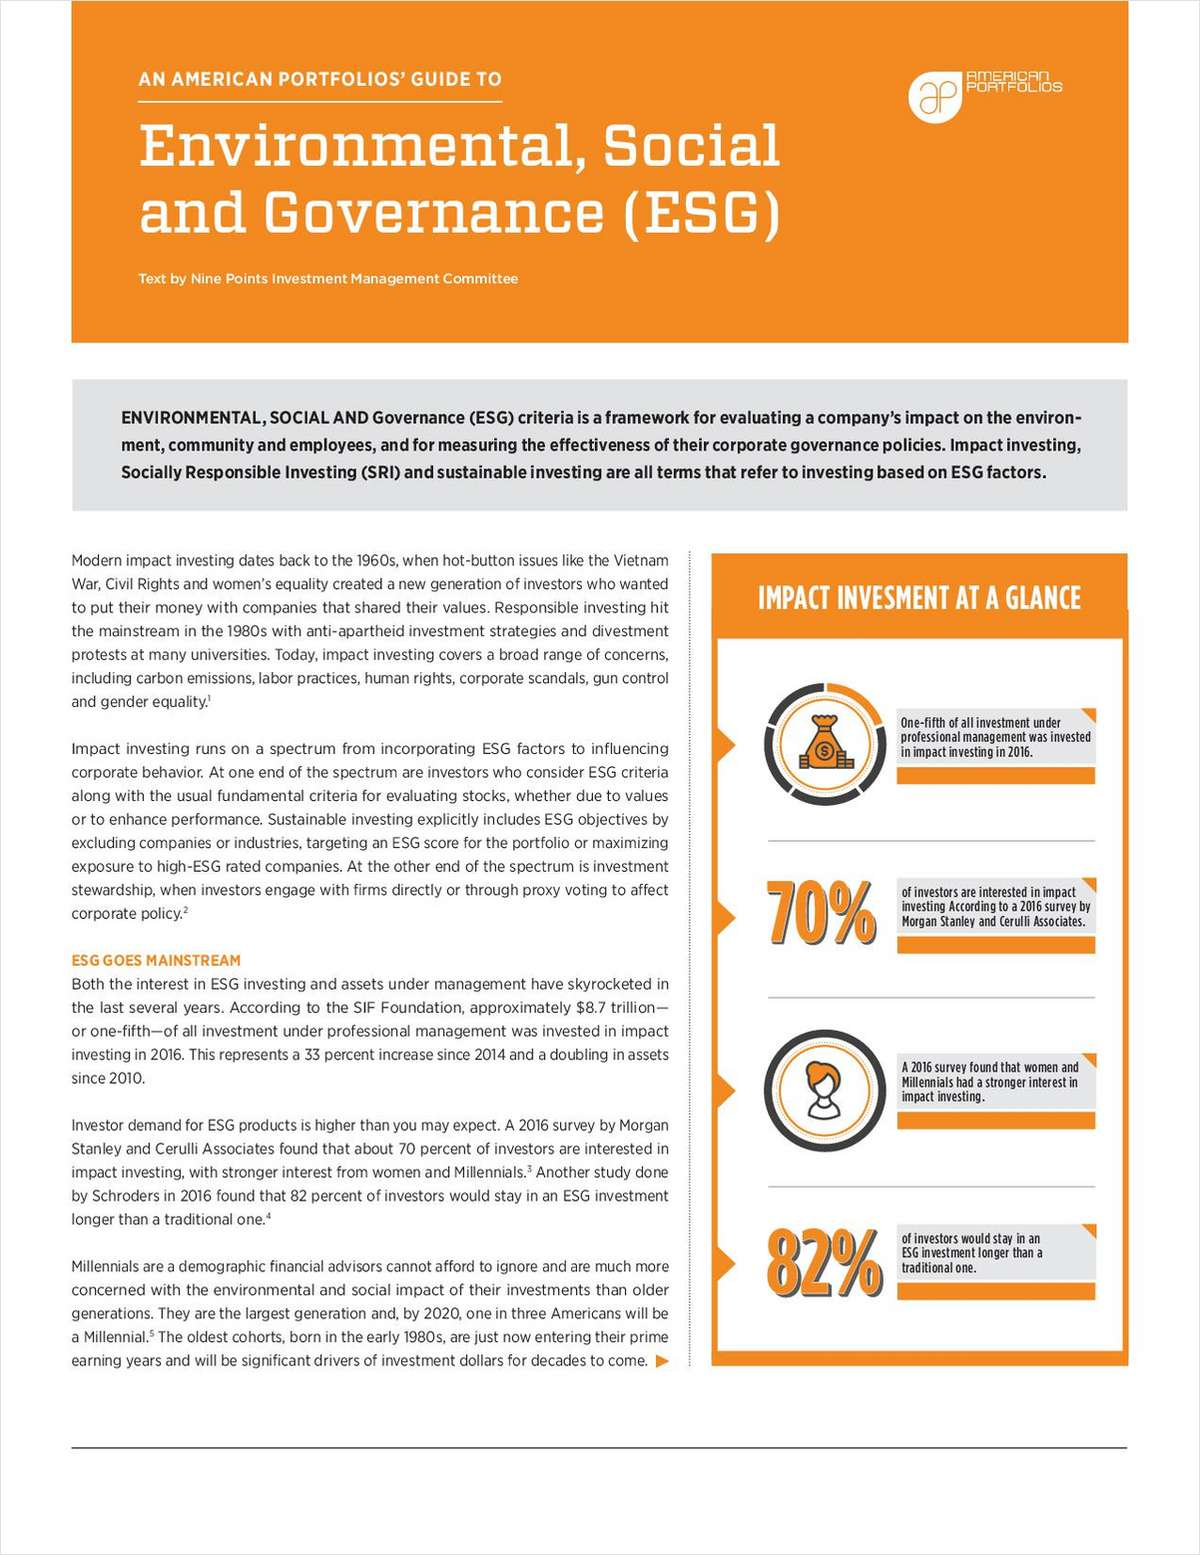 A Guide to Environmental, Social and Governance (ESG) Investing